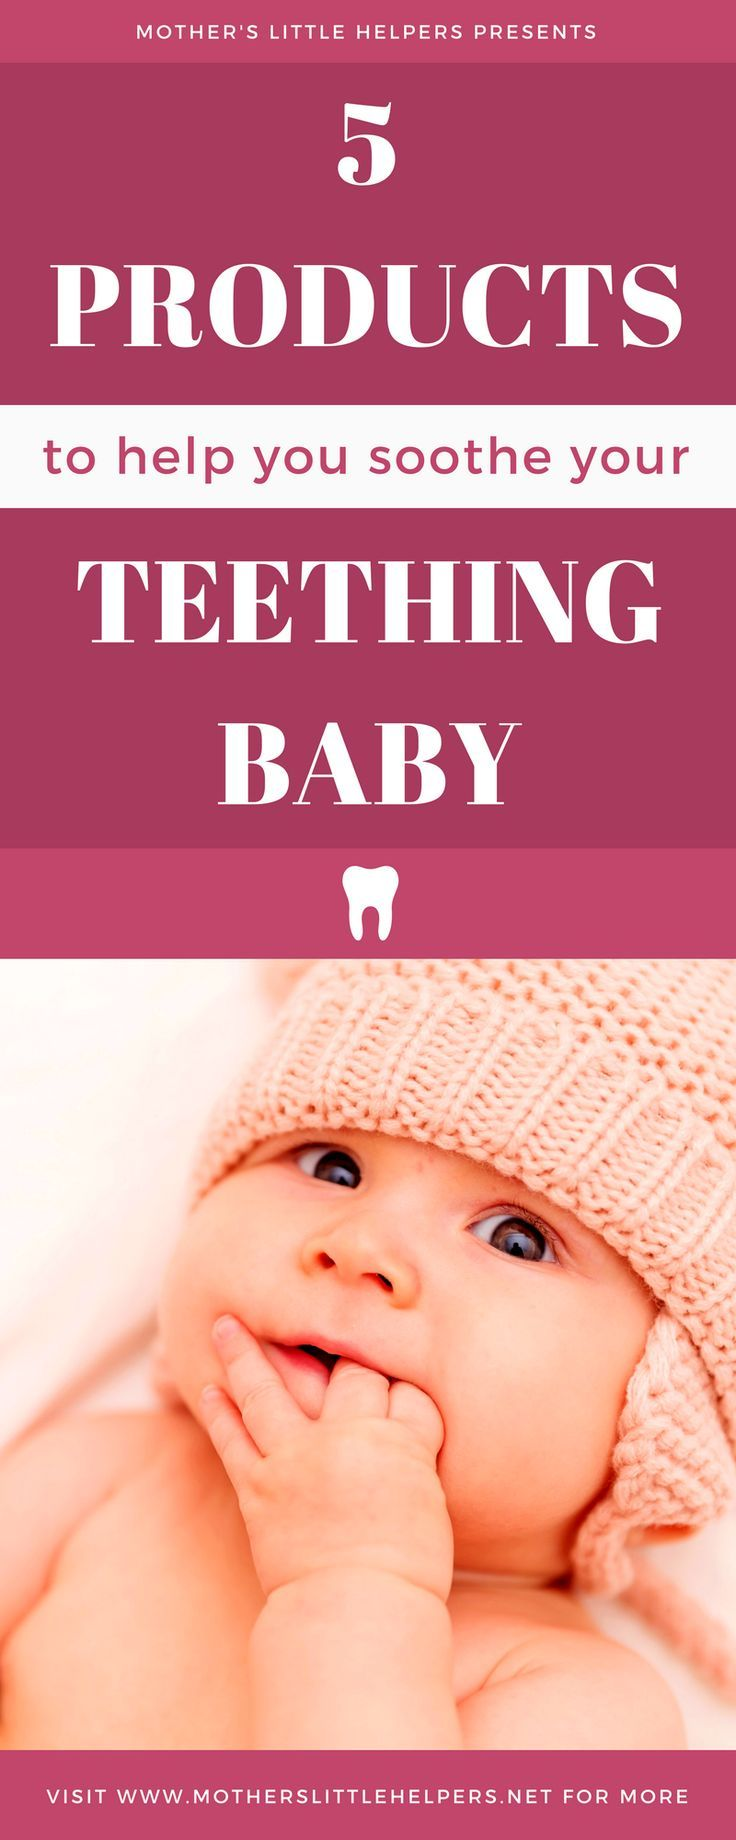 """Is your baby irritable and unhappy due to teething? Check out my article """"5 Products That Will Help You Soothe Your Teething Baby"""" for some quick solutions.    Teething   Teething Remedies   Teething Remedies for Babies   Baby is irritable and unhappy   Products to Make Teething Easier   Teething Toy   Teething Gel   Teething Drops   Natural Teething Remedies   Teething Oil   Baltic Amber Teething Necklace   What to do about teething   Natural Remedies to Relieve Teething Pain"""